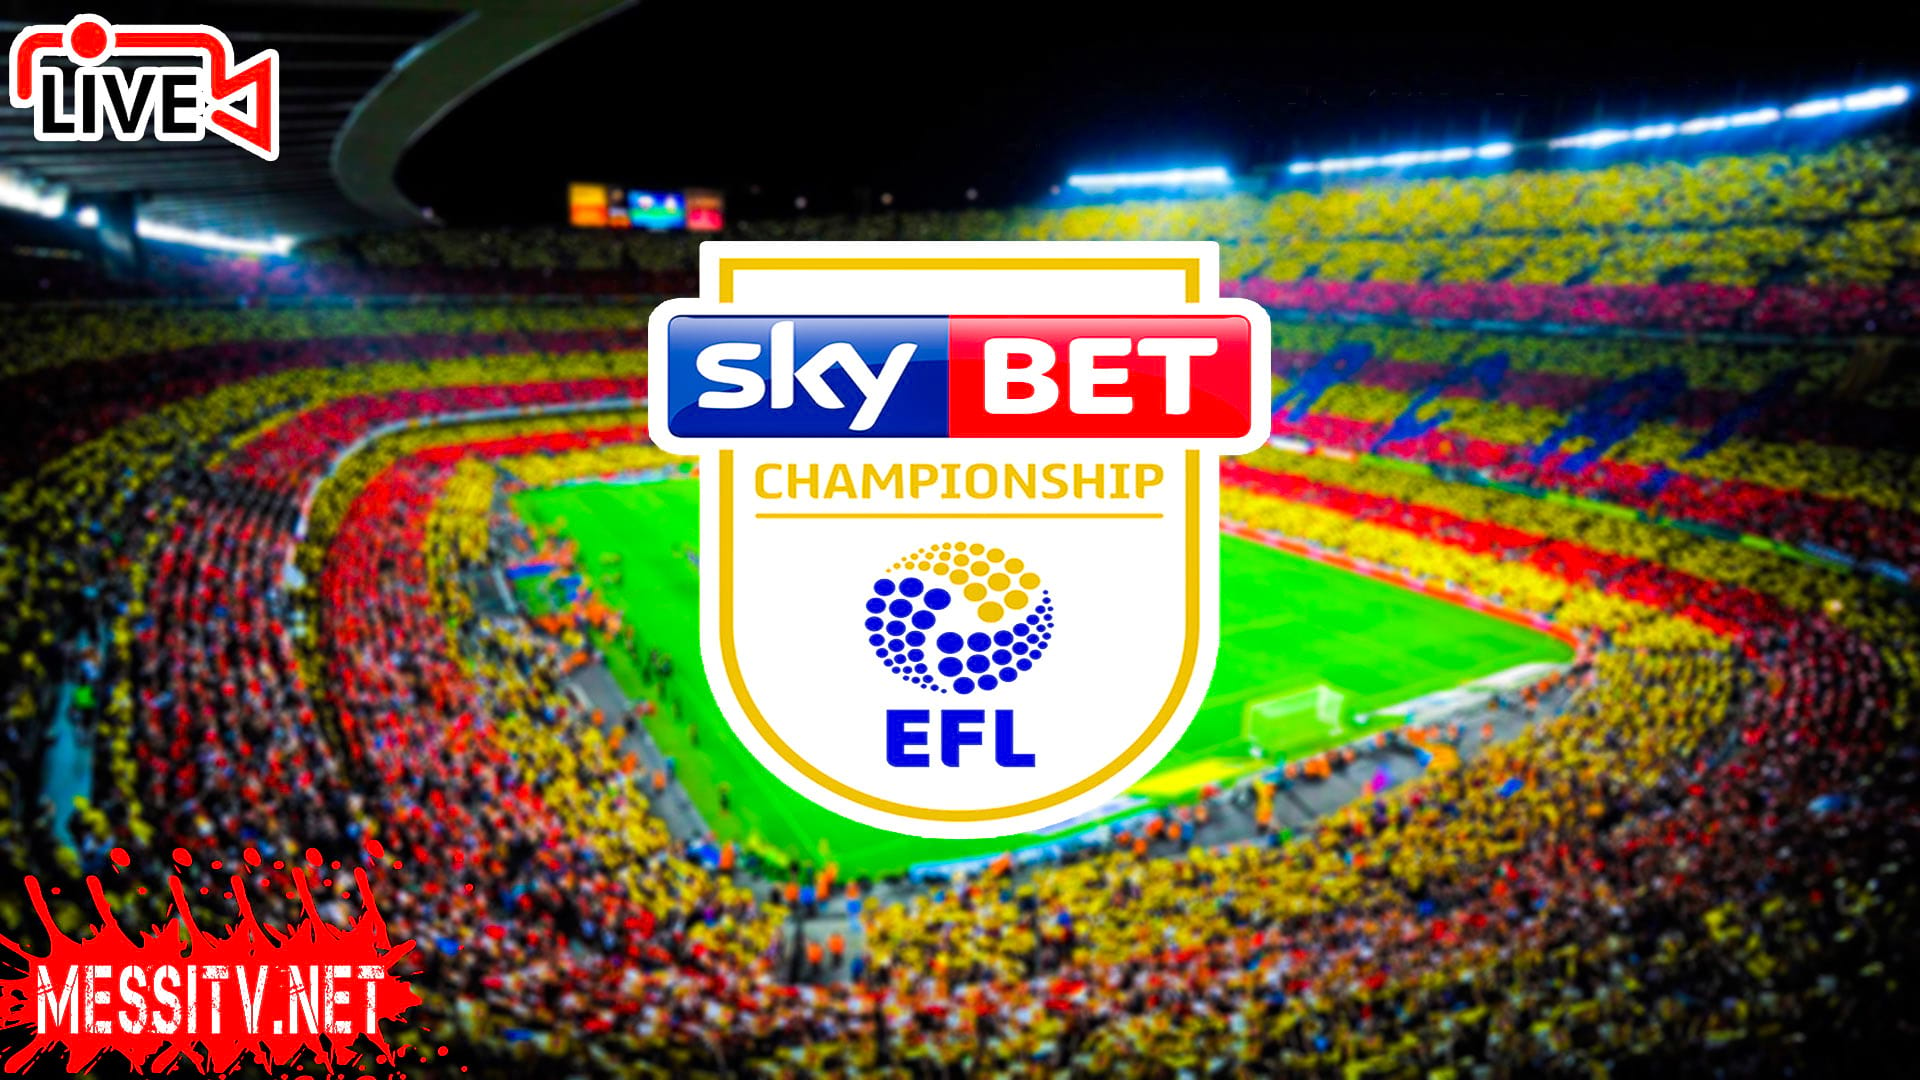 Watch All England Football League Championship (EFL) Matches Live Stream Online [Full HD + 4K + Support Mobile], Watch Sky Bet Championship live online, watch Football live online, watch Blackburn Rovers vs Hull City live online, watch Blackpool vs Huddersfield Town live online, watch Sheffield United vs Preston North End live online, watch AFC Bournemouth vs Queens Park Rangers live online, watch Reading vs Peterborough United live online, watch West Bromwich Albion vs Derby County live online, watch GGG live online, watch HHH live online, Assistir Inglaterra Sky Bet Championship ao vivo online, assistir futebol ao vivo online, assistir Blackburn Rovers vs Hull City ao vivo online, Blackpool vs Huddersfield Town ao vivo online, assistir Sheffield United vs Preston North End ao vivo online, assistir AFC Bournemouth vs Queens Park Rangers ao vivo online, assistir Reading vs Peterborough United ao vivo online, assistir West Bromwich Albion vs Derby County ao vivo online, assistir GGG ao vivo online, assistir HHH ao vivo conectados, England Football League Championship (EFL) Goals & Highlights & FULL Match Replay HD, Manchester City, Man City, Man utd, Manchester United, Leicester City, Chelsea, West Ham United, Tottenham, Liverpool, Everton, Arsenal, Leeds United, Aston Villa, Wolverhampton, Crystal Palace, Southampton, Newcastle United, Brighton & Hove Albion, Burnley, Fulham, West Bromwich Albion, Sheffield United